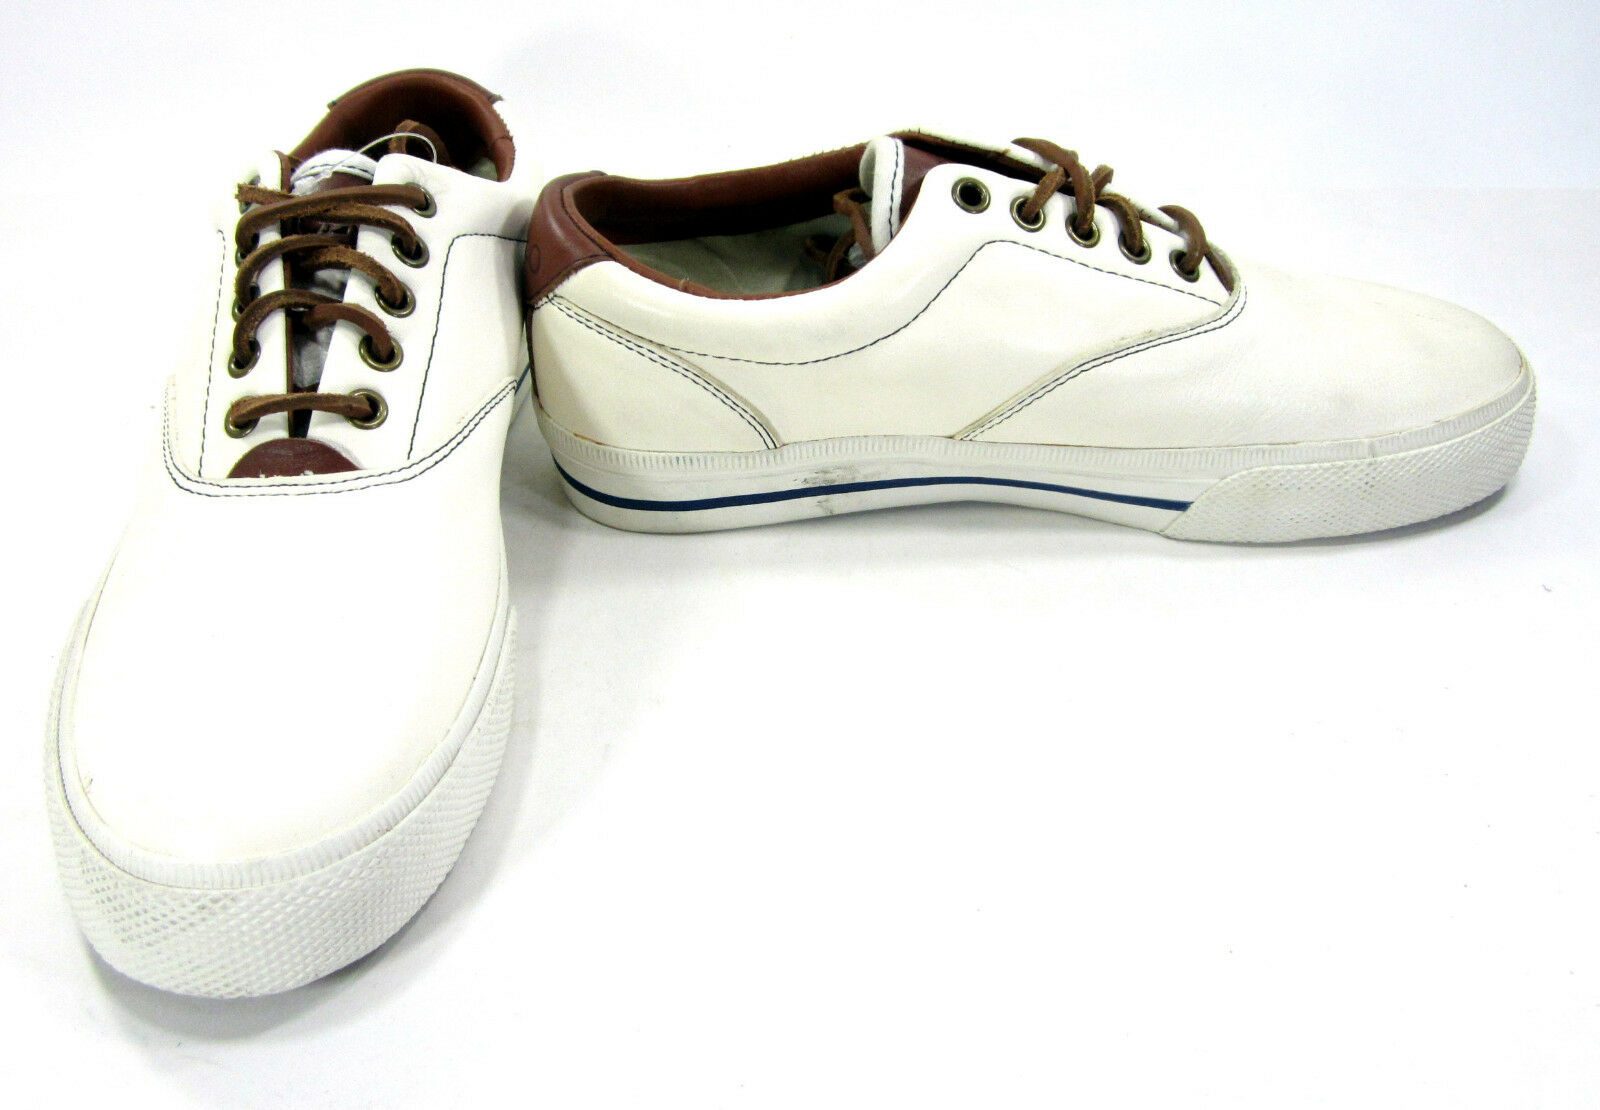 Polo Ralph Lauren shoes Vaughn Athletic Soft Leather White Cream Sneakers Size 8